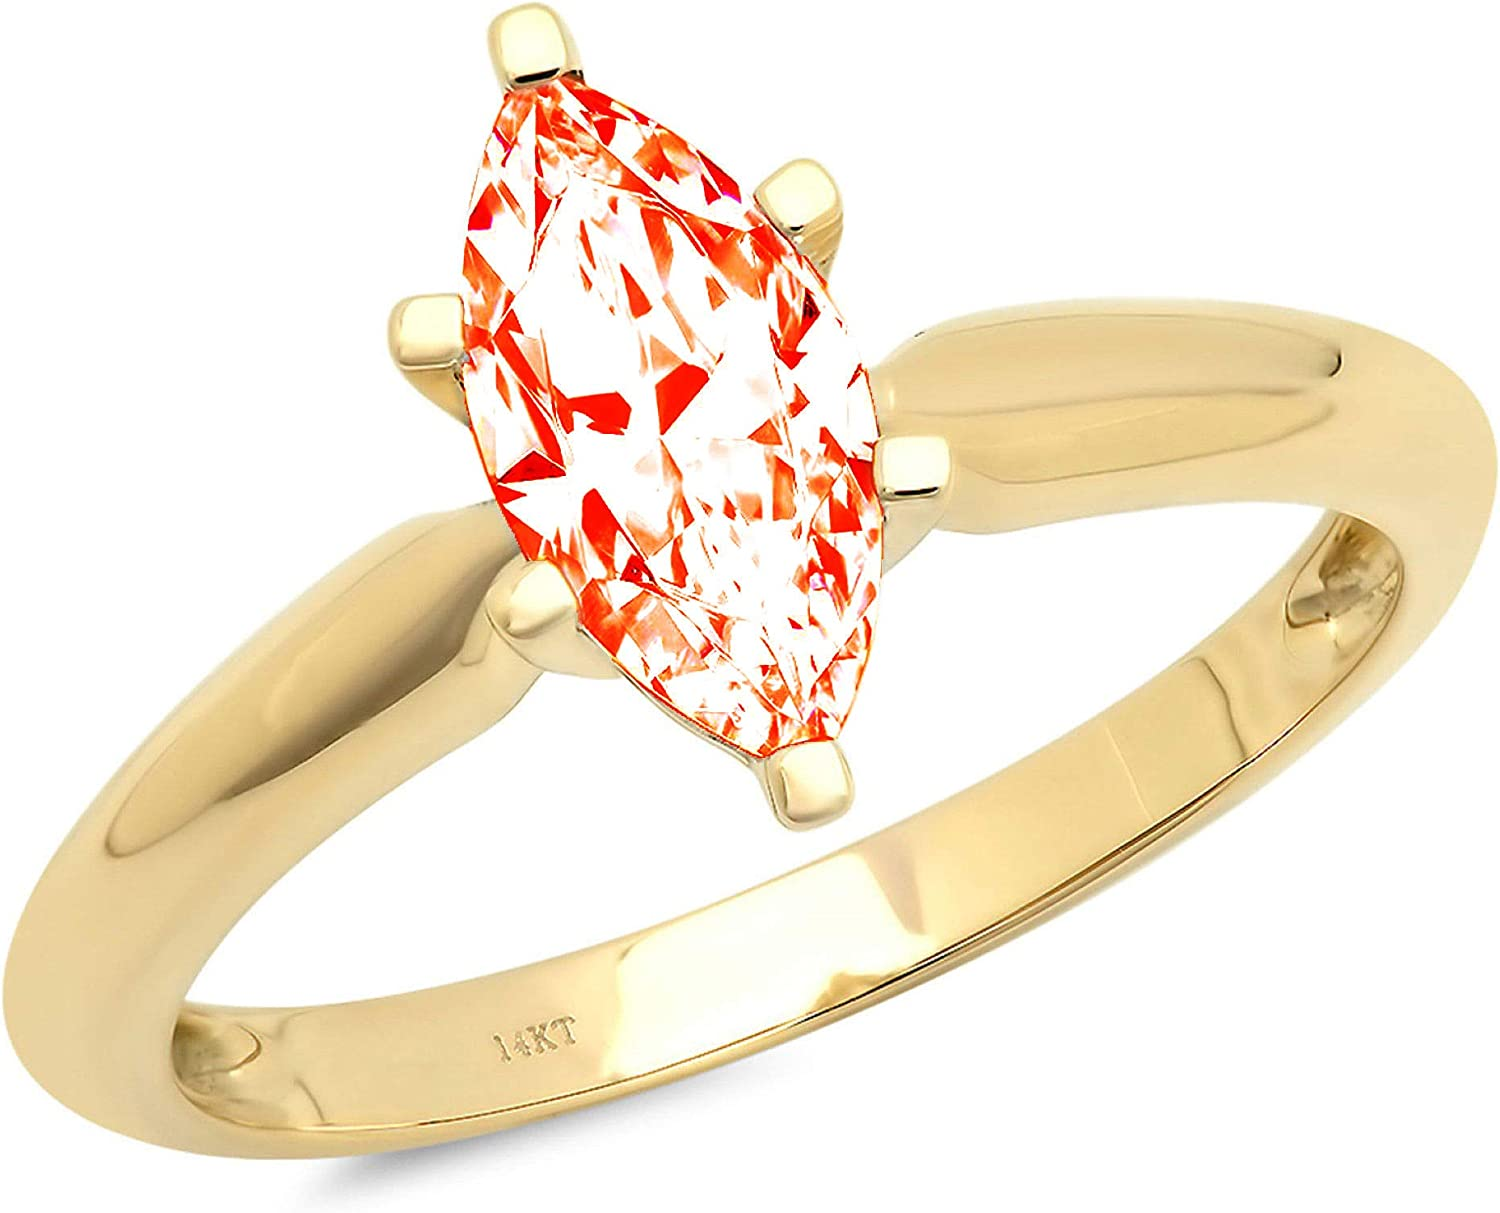 1.4ct Brilliant Marquise Cut Solitaire Stunning Genuine Red Simulated Diamond Cubic Zirconia Ideal VVS1 D 6-Prong Engagement Wedding Bridal Promise Anniversary Ring Solid 14k Yellow Gold for Women